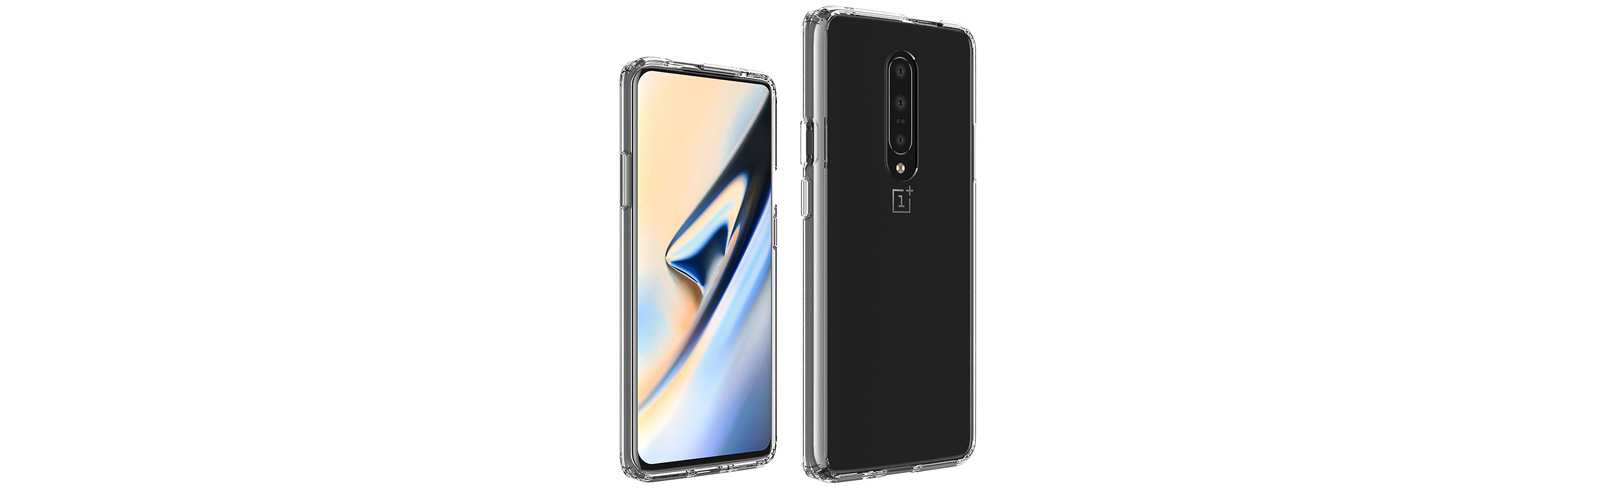 OnePlus 7 design leaked by a case maker